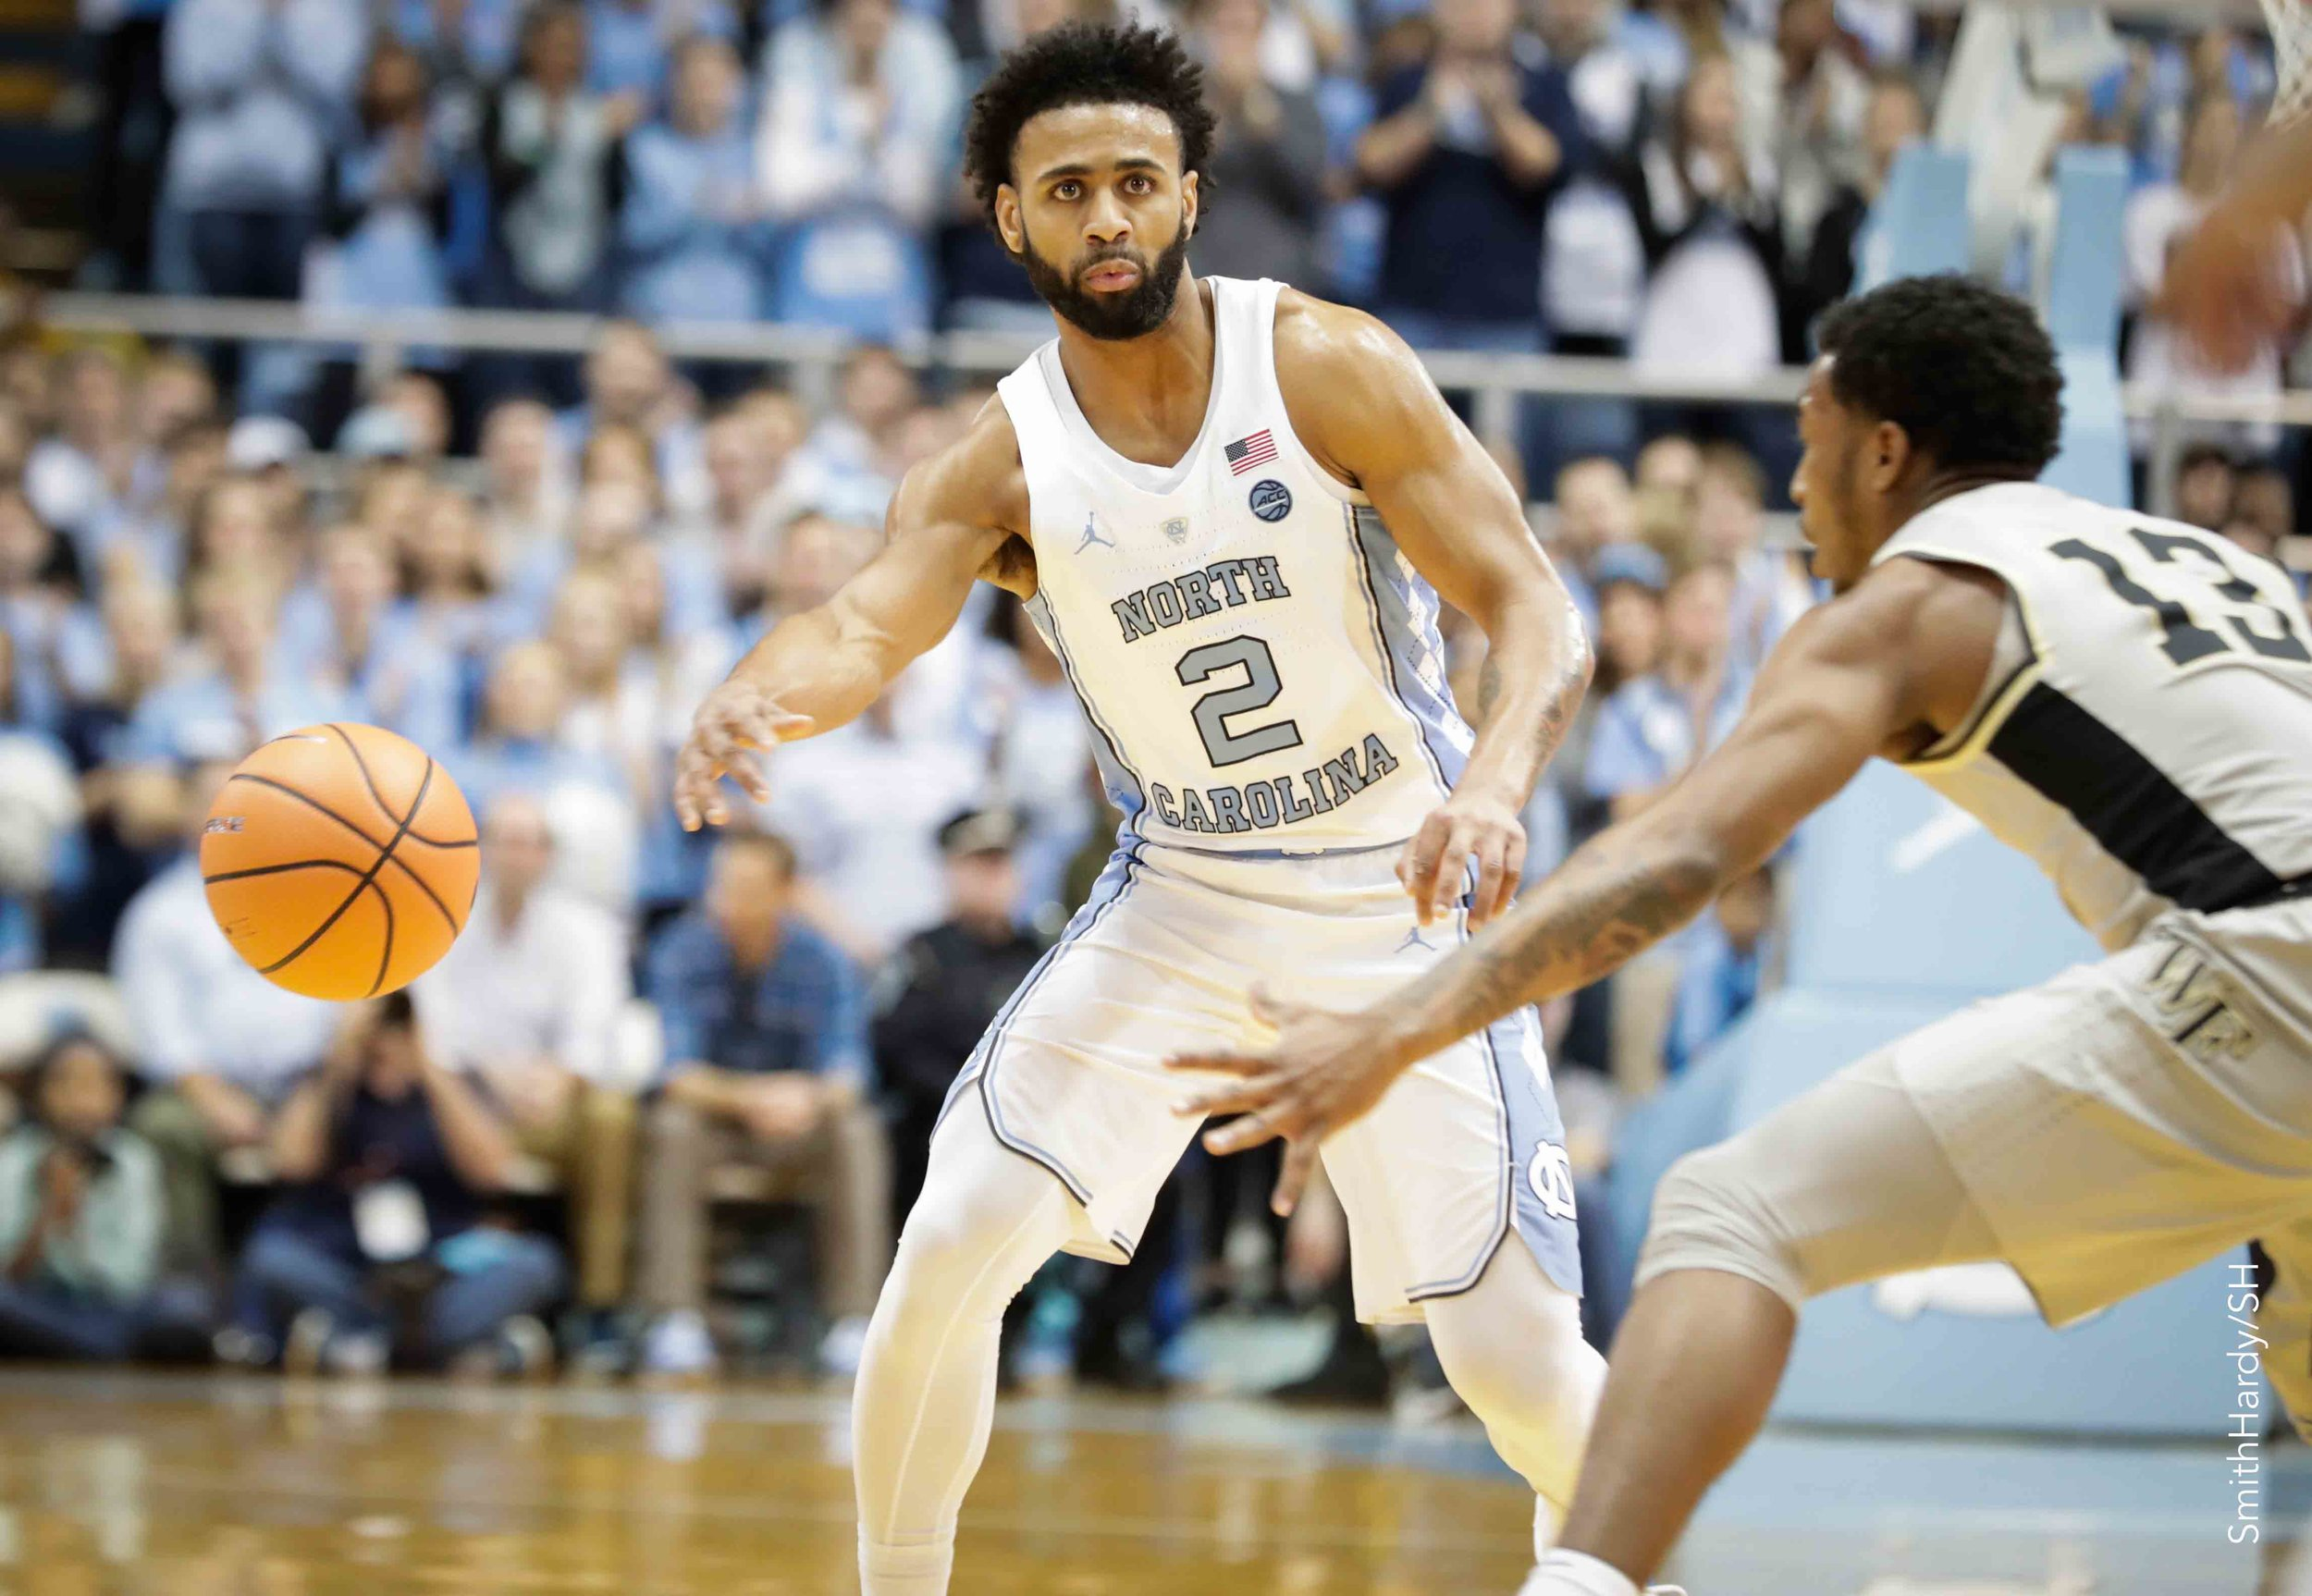 Joel Berry sank two free throws in the final moments of Saturday's game against Notre Dame to give the Tar Heels the lead for good. Berry finished with 15 points, three assists and two rebounds.